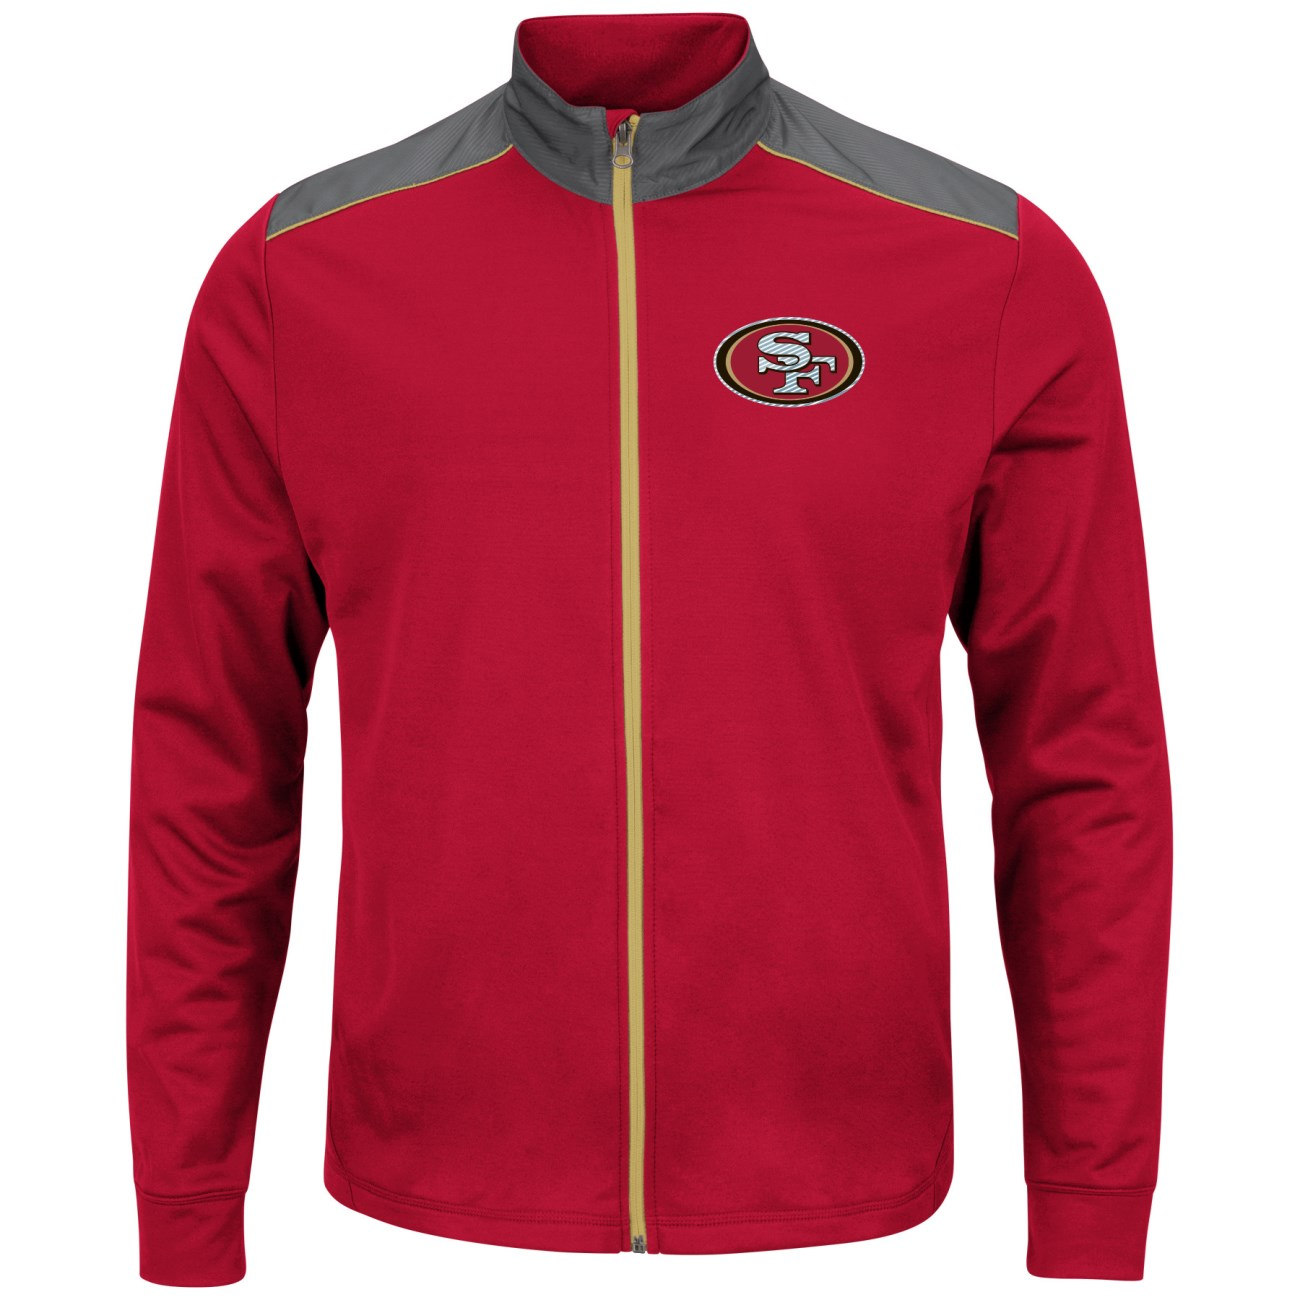 "San Francisco 49ers Majestic NFL ""Team Tech"" Men's Full Zip Jacket Sweatshirt by Majestic"